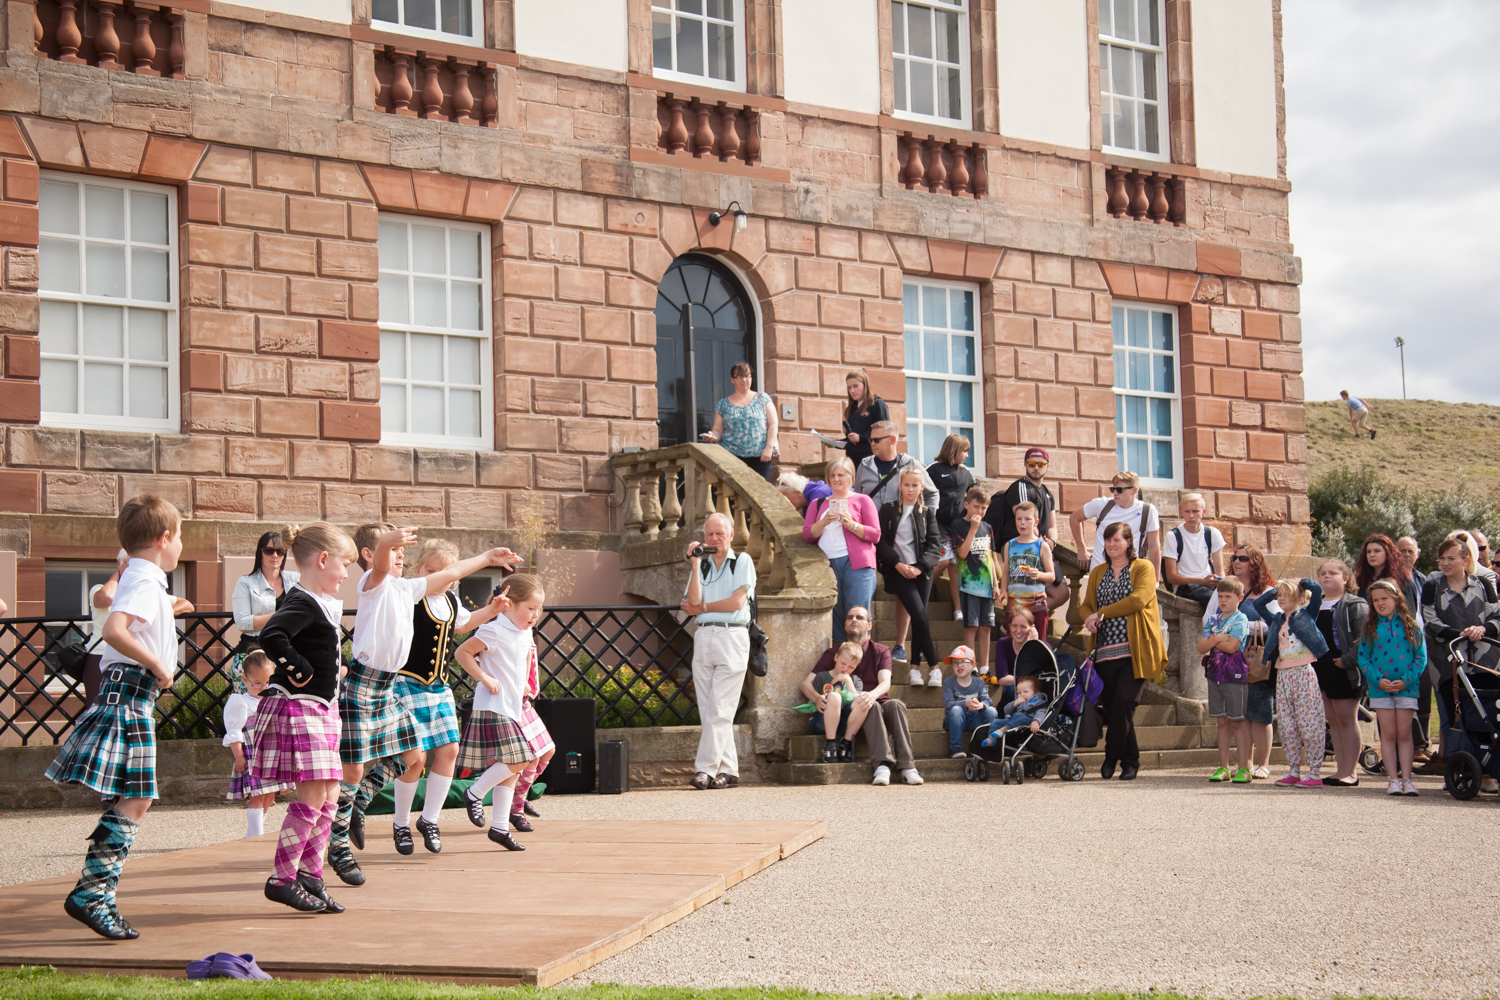 PICTORIAL_BERWICK_eyemouth-gunsgreen-extravaganza-photography-entertainment-party-event-photographer-harbour-gary-dunn-dancers-stilts-performances-speeches-day-out-summer-4593.jpg